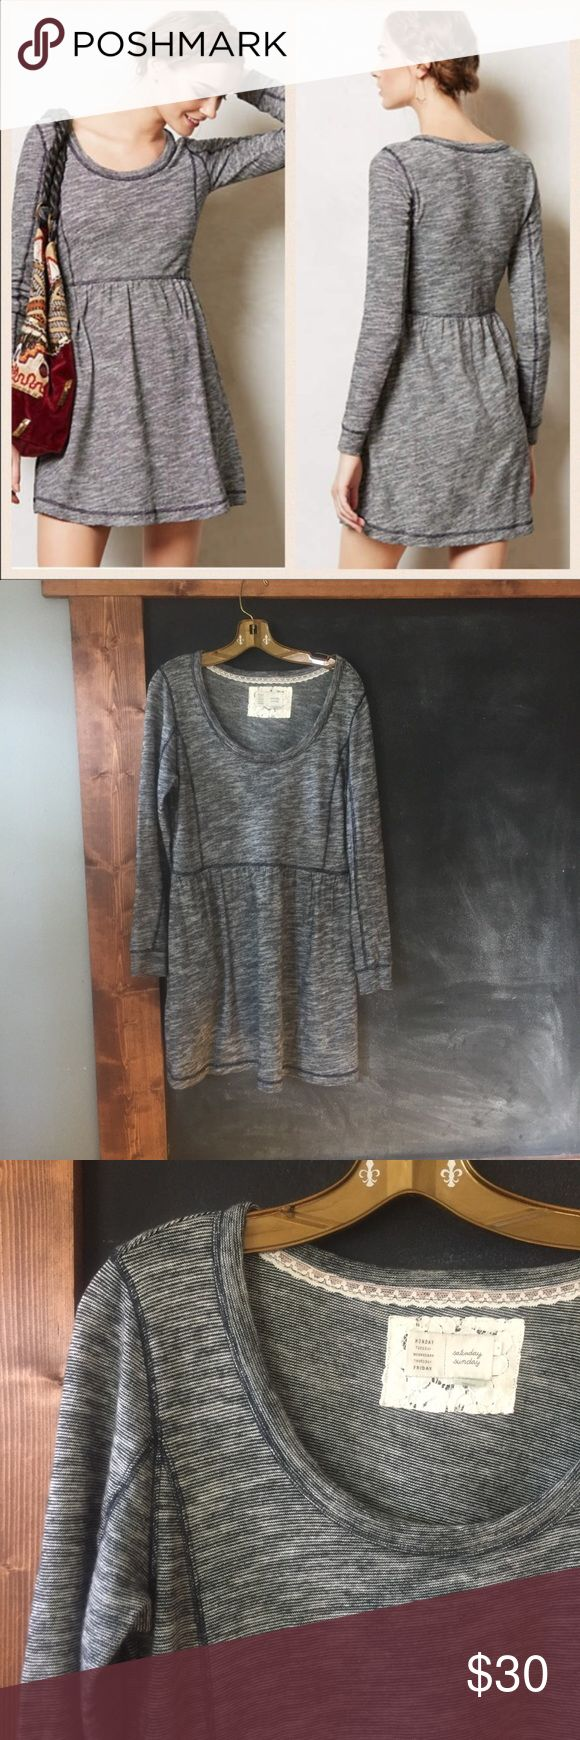 Saturday Sunday Dress by anthropologie Size M vguc Adorable Saturday Sunday desna Dress vguc perfect with leggings a long cardigan and a scarf. Such a cute dress!! Anthropologie Dresses